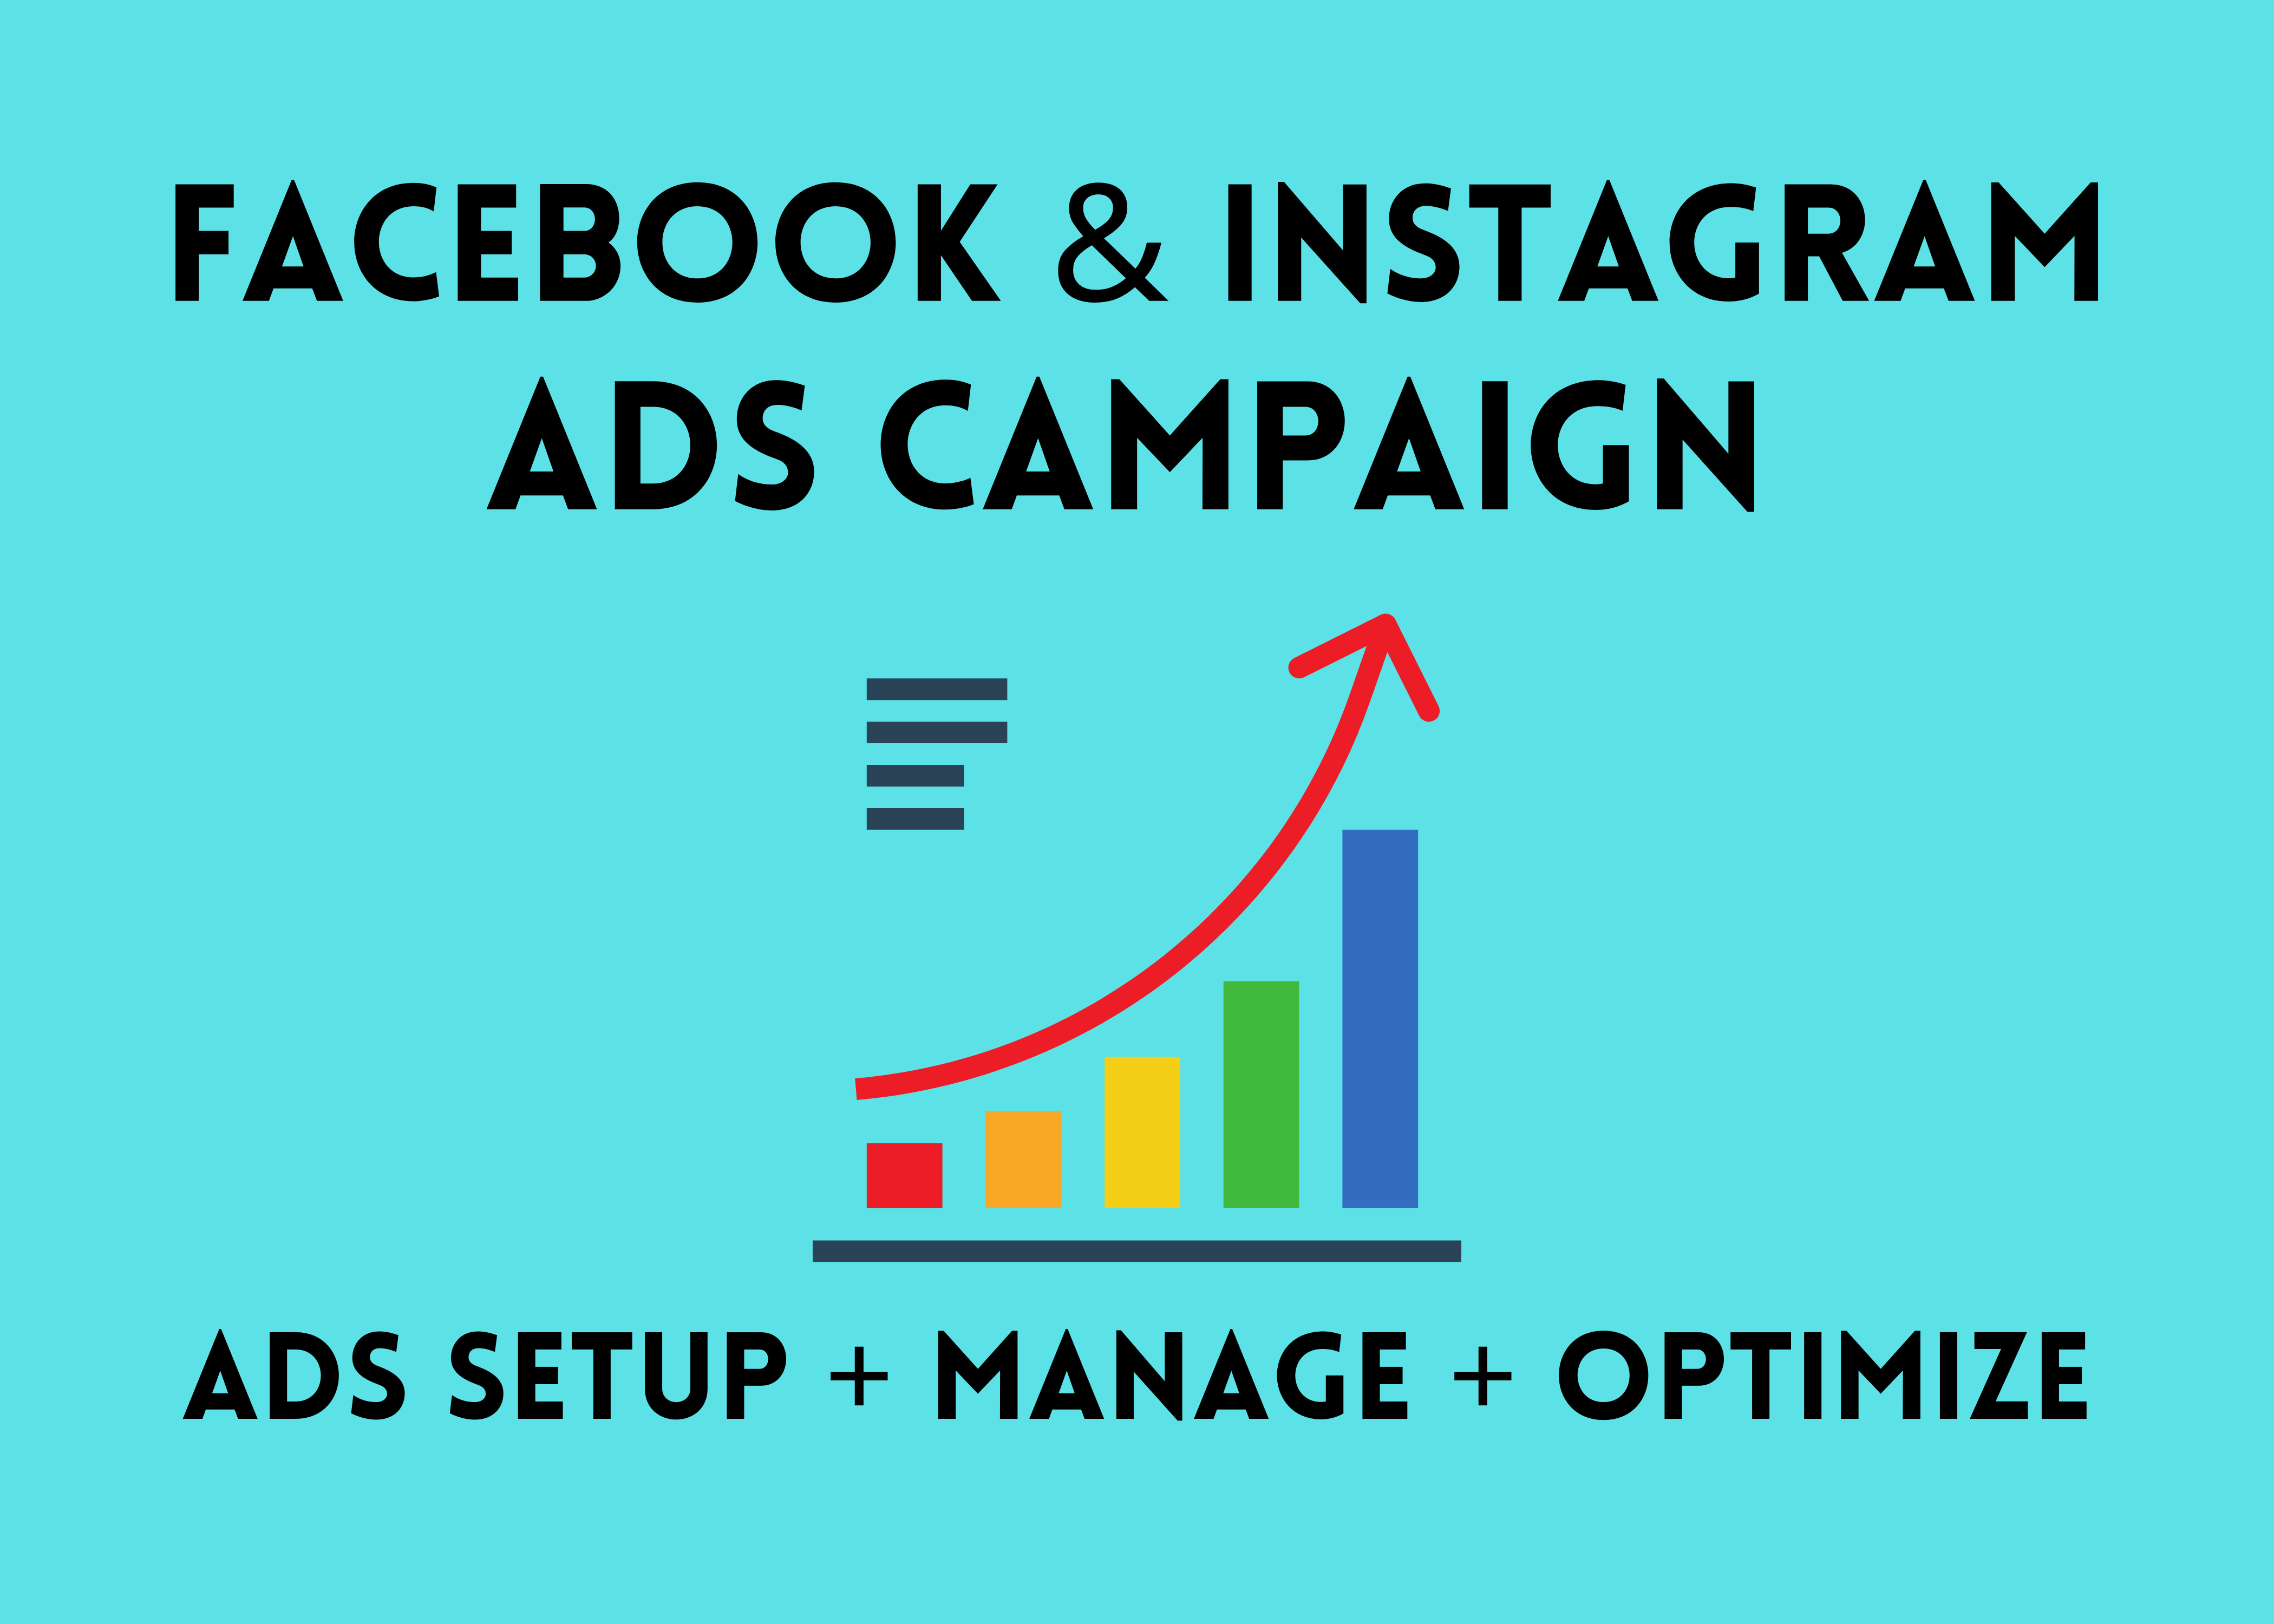 I will be facebook ads manager for your business